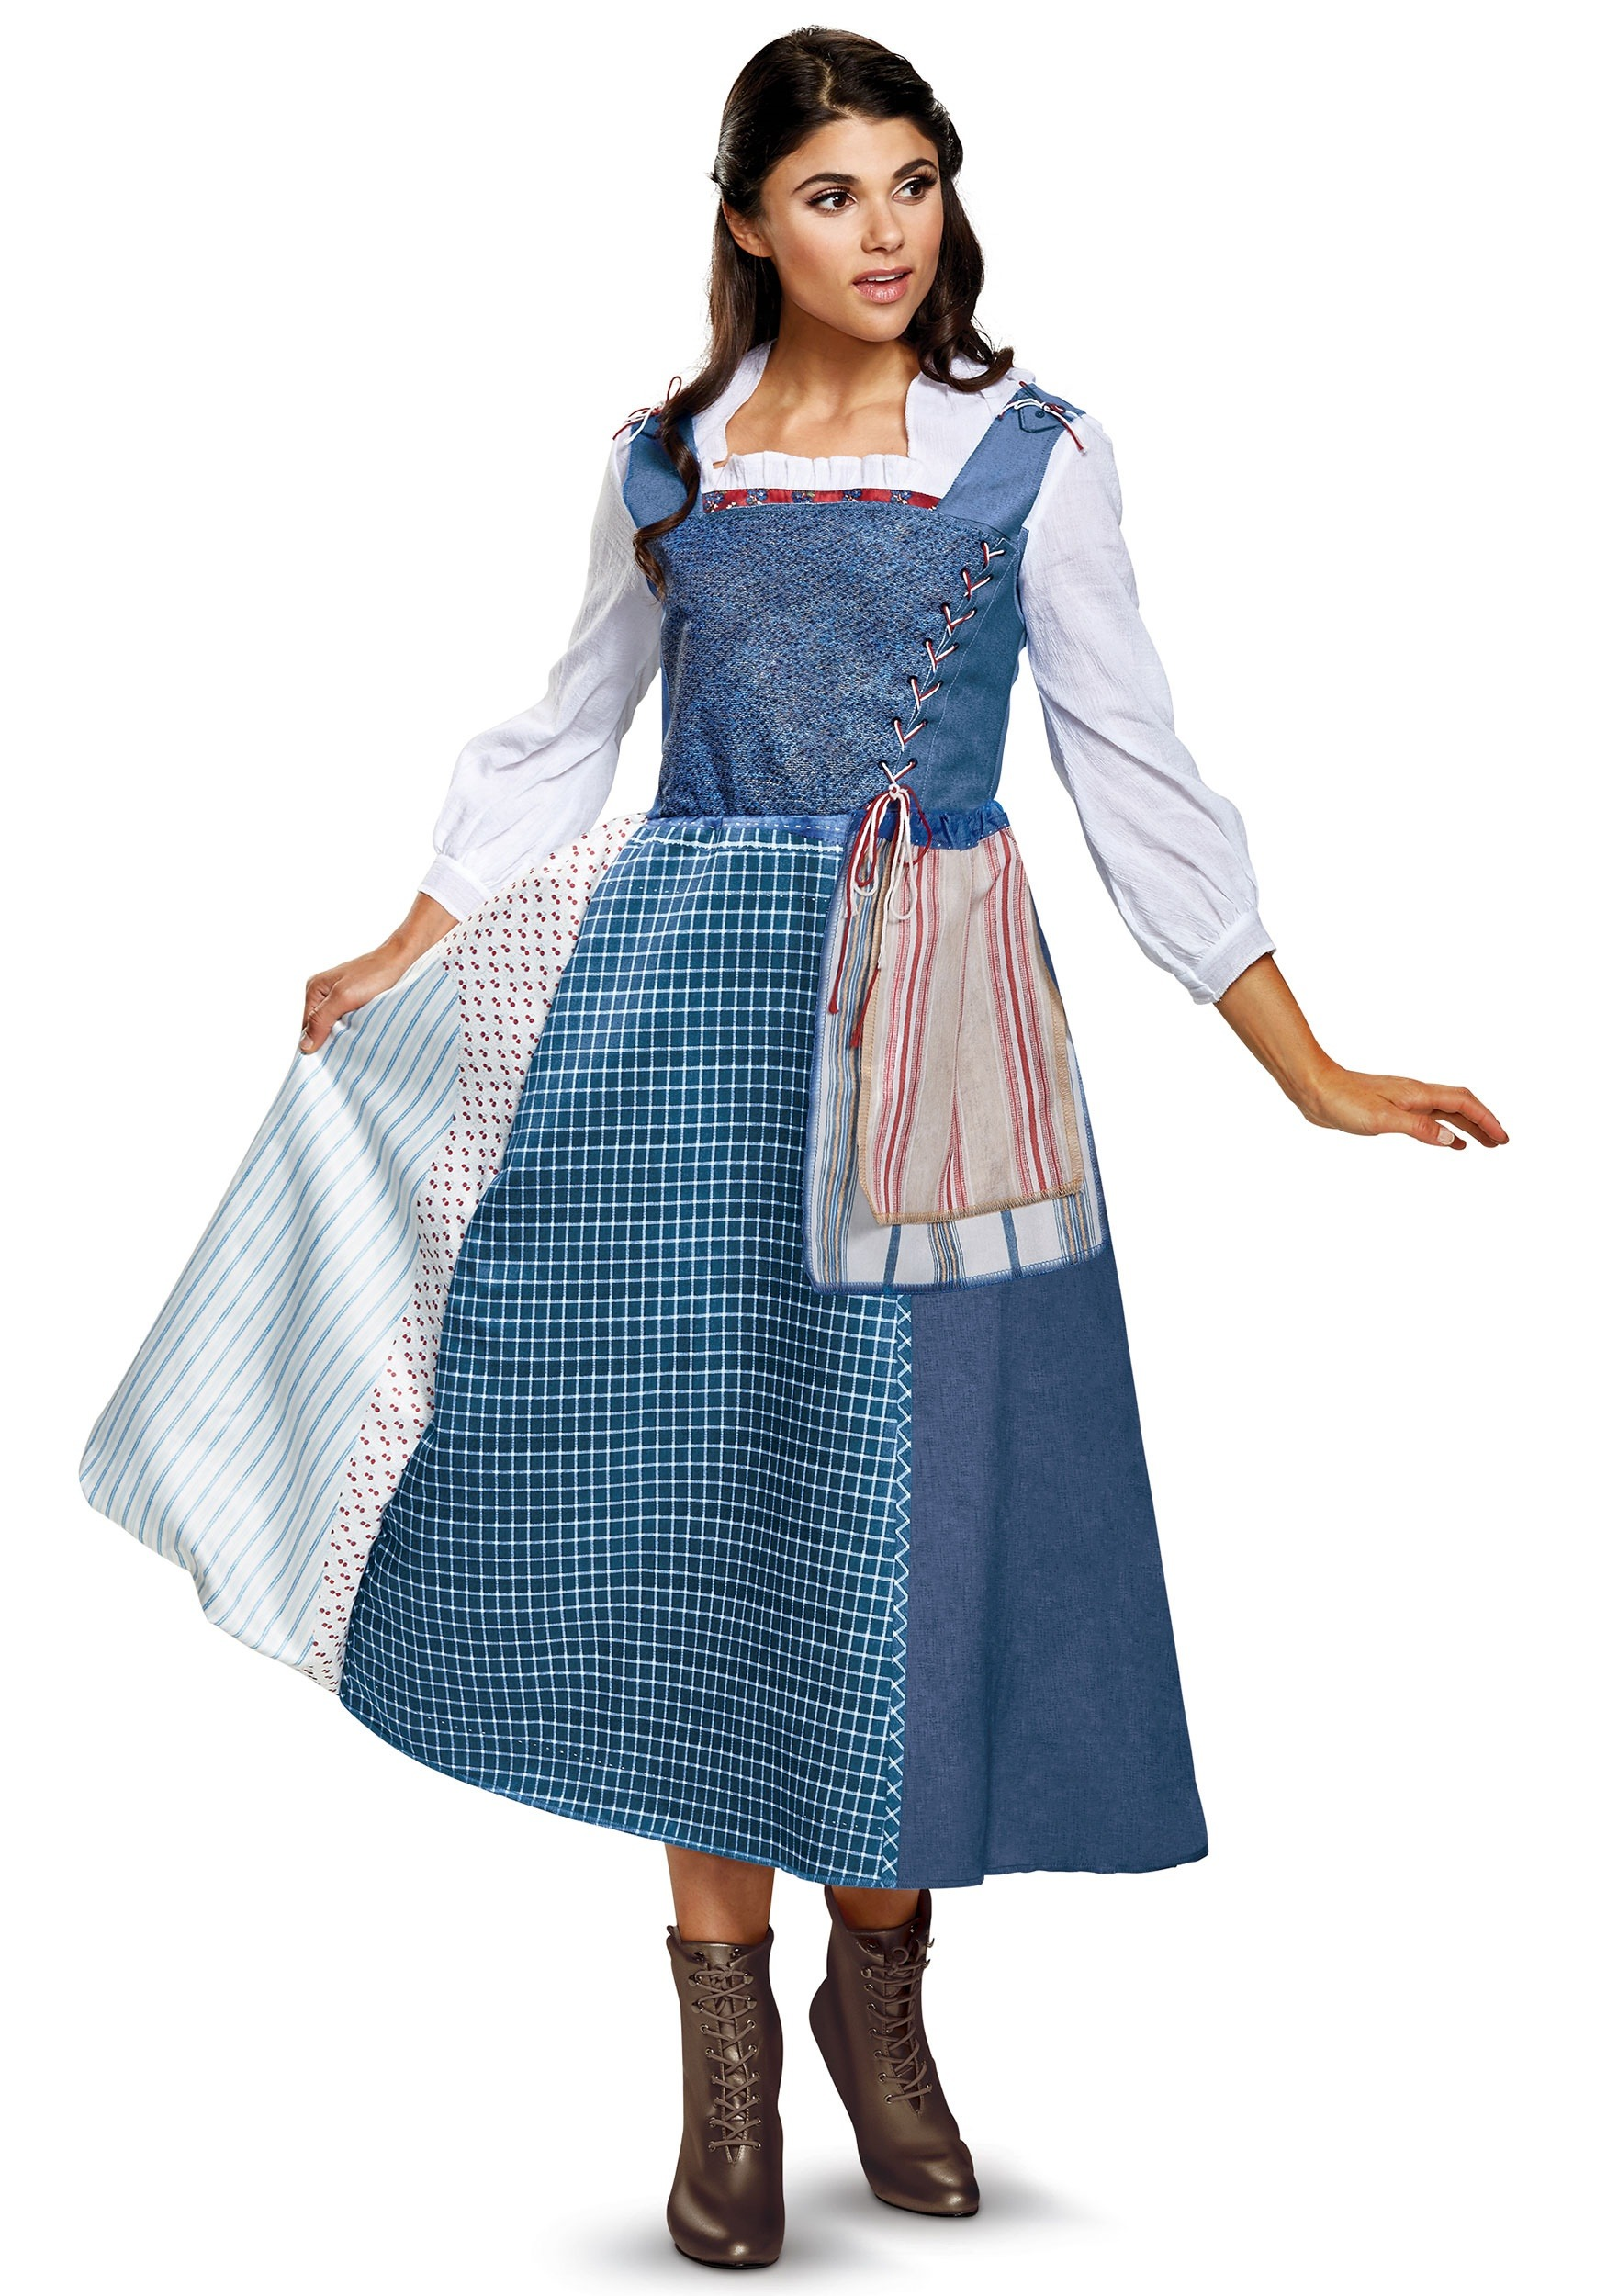 Belle Village Dress Deluxe Women's Costume